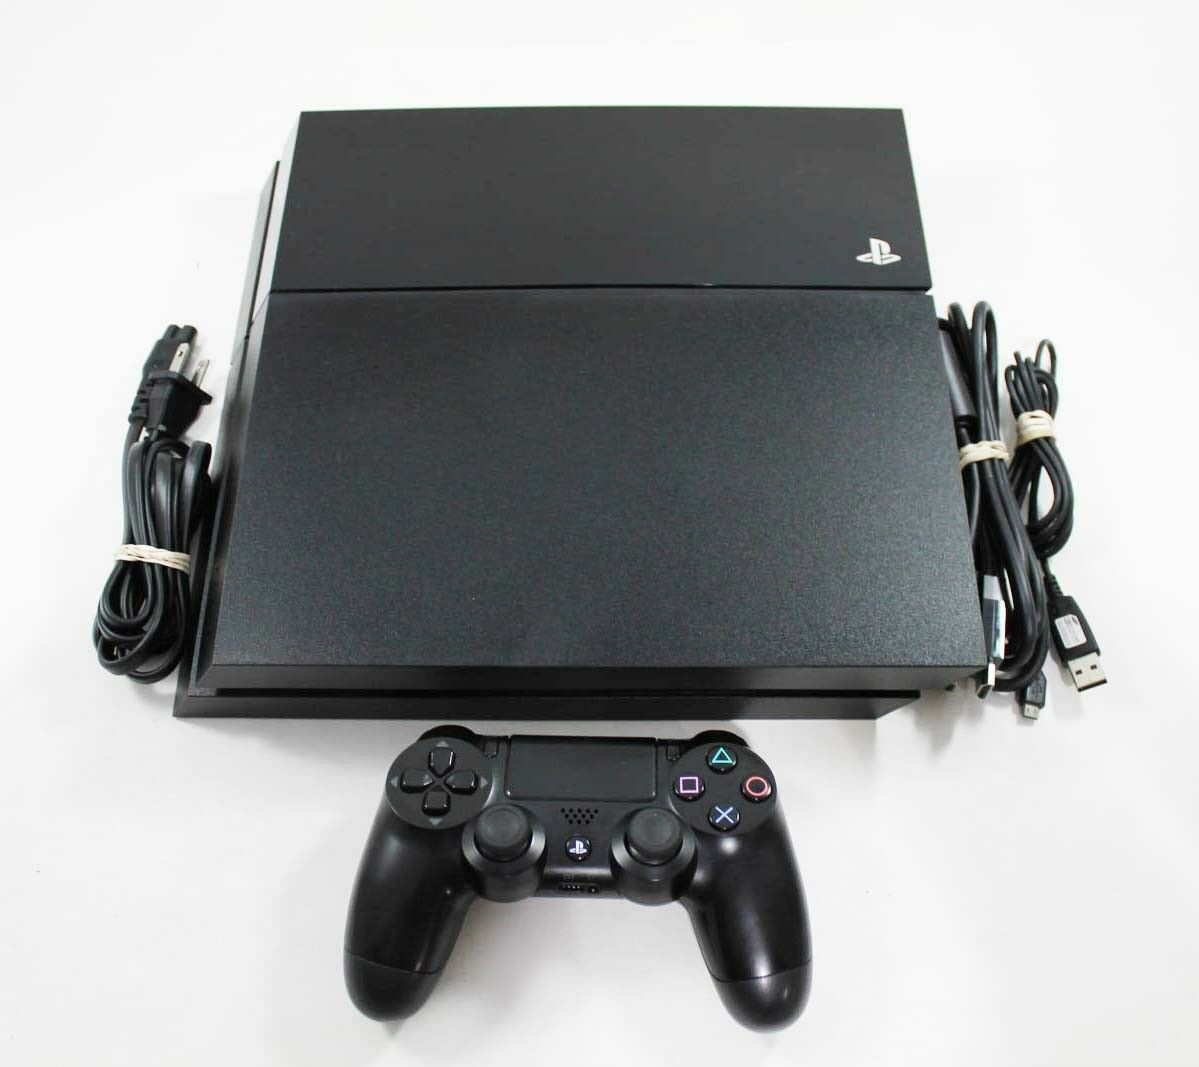 Playstation 4 - Playstation 4 PS4 Black 500 GB System